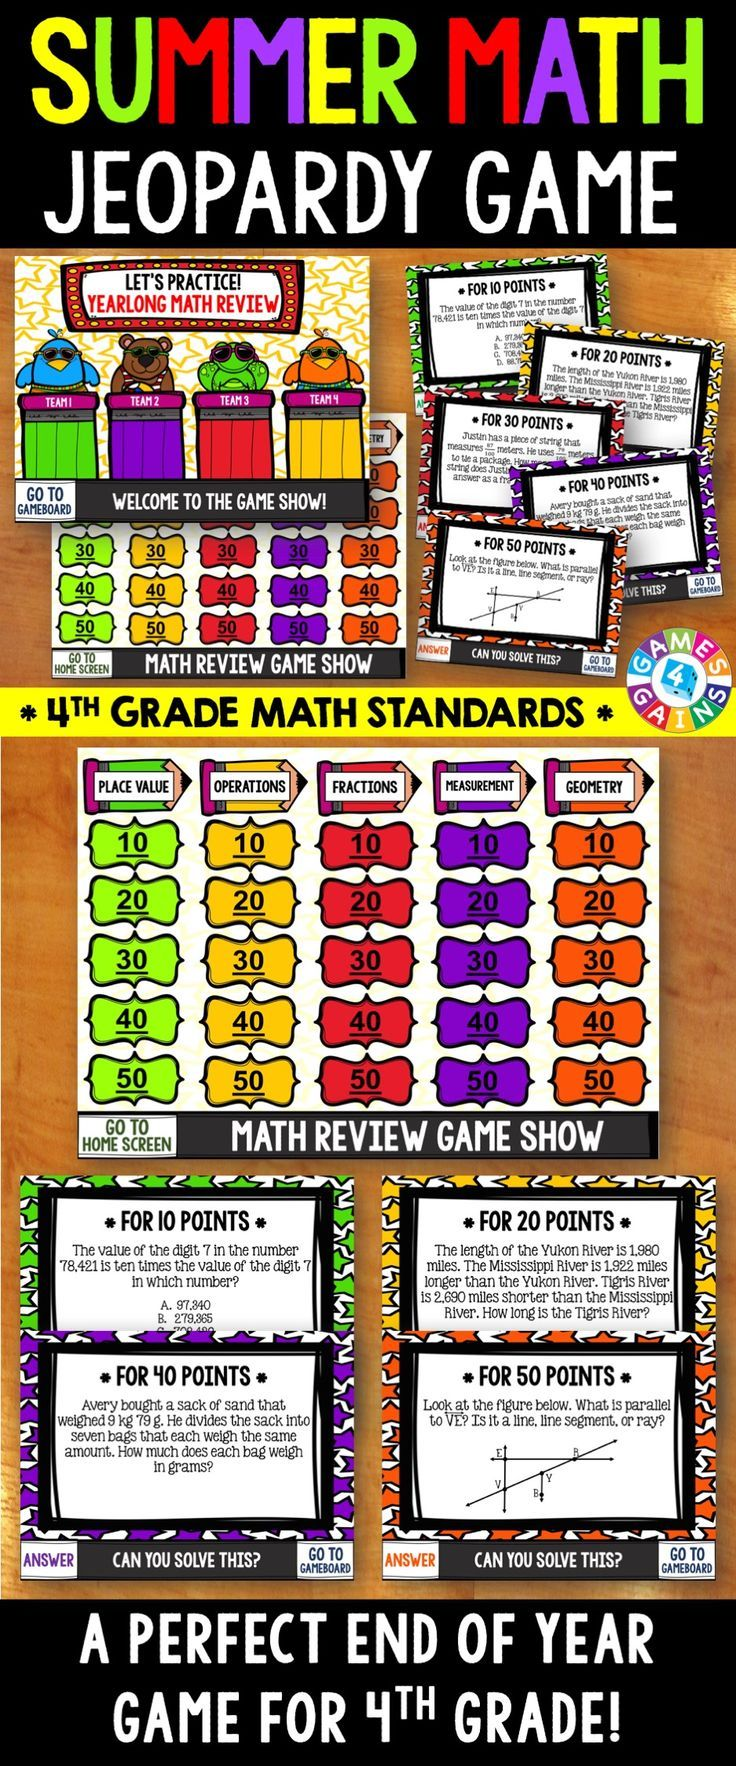 Jeopardy Math Review Game for 4th Grade gets students excited about practicing their knowledge of place value, operations, fractions, measurement, data, and geometry. To play the game, students divide into four teams that will compete to answer a variety of 4th grade math questions and earn the highest score!